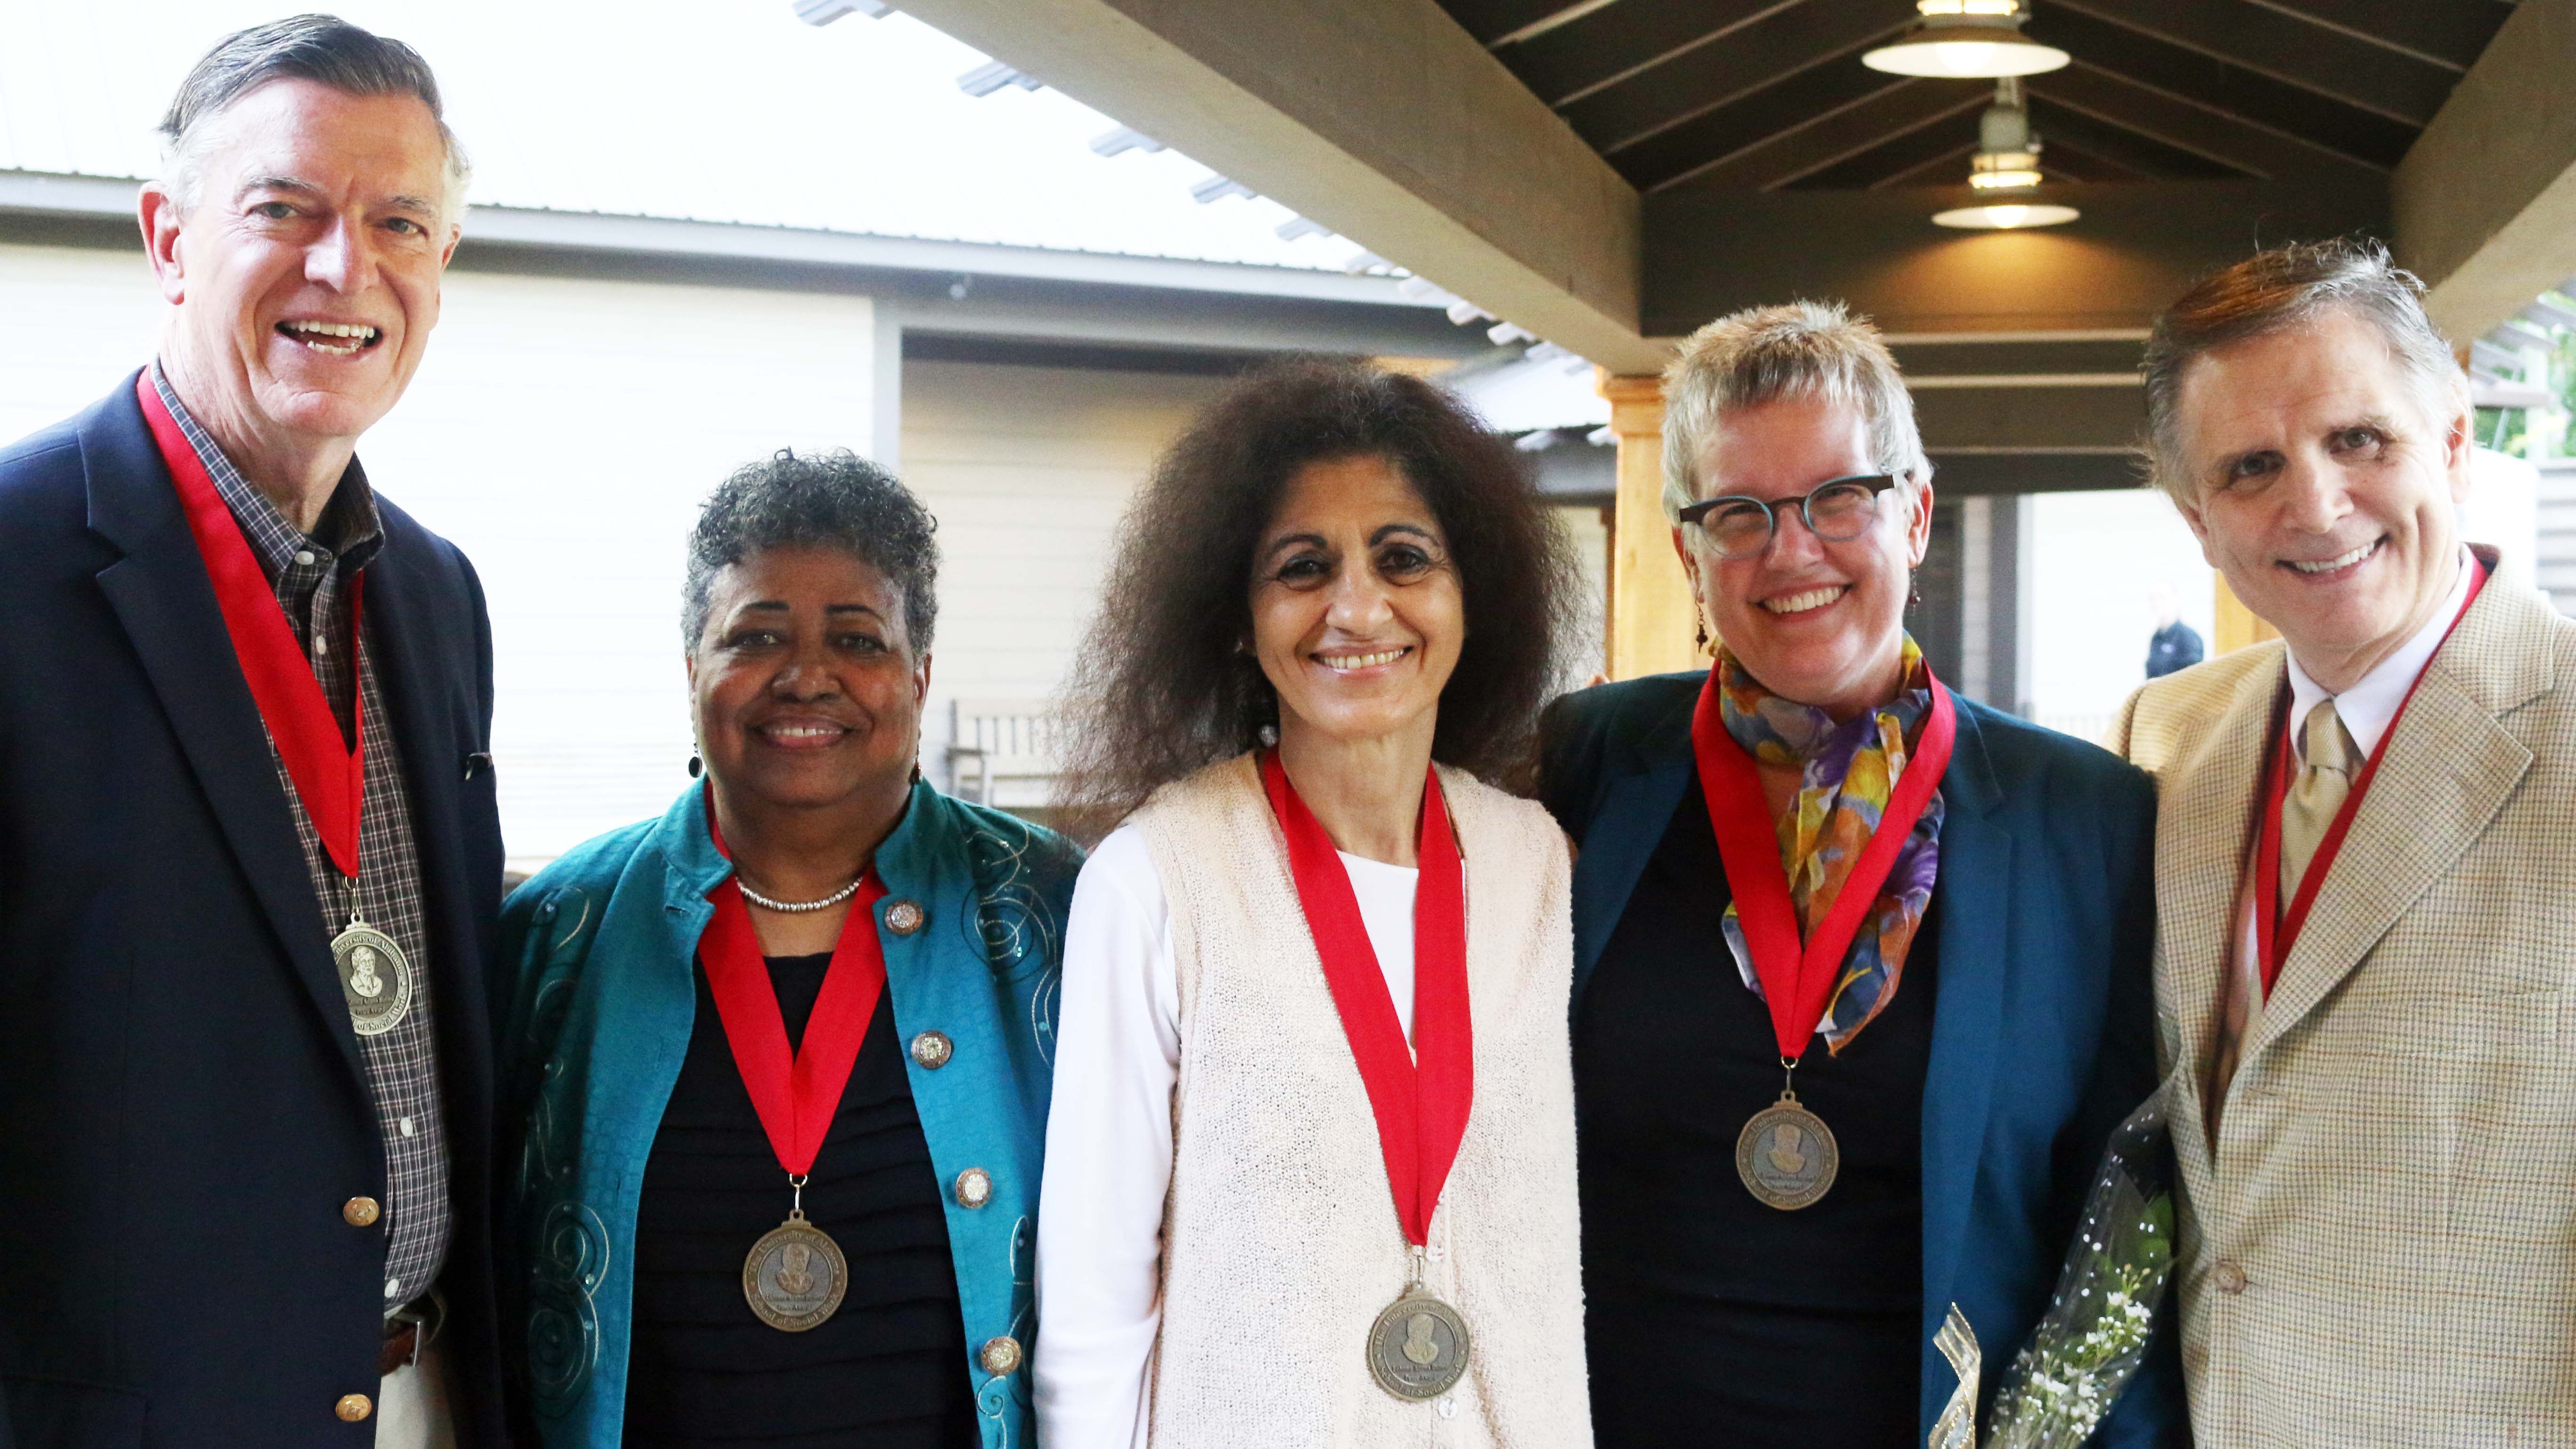 A group of five people with medals around their necks